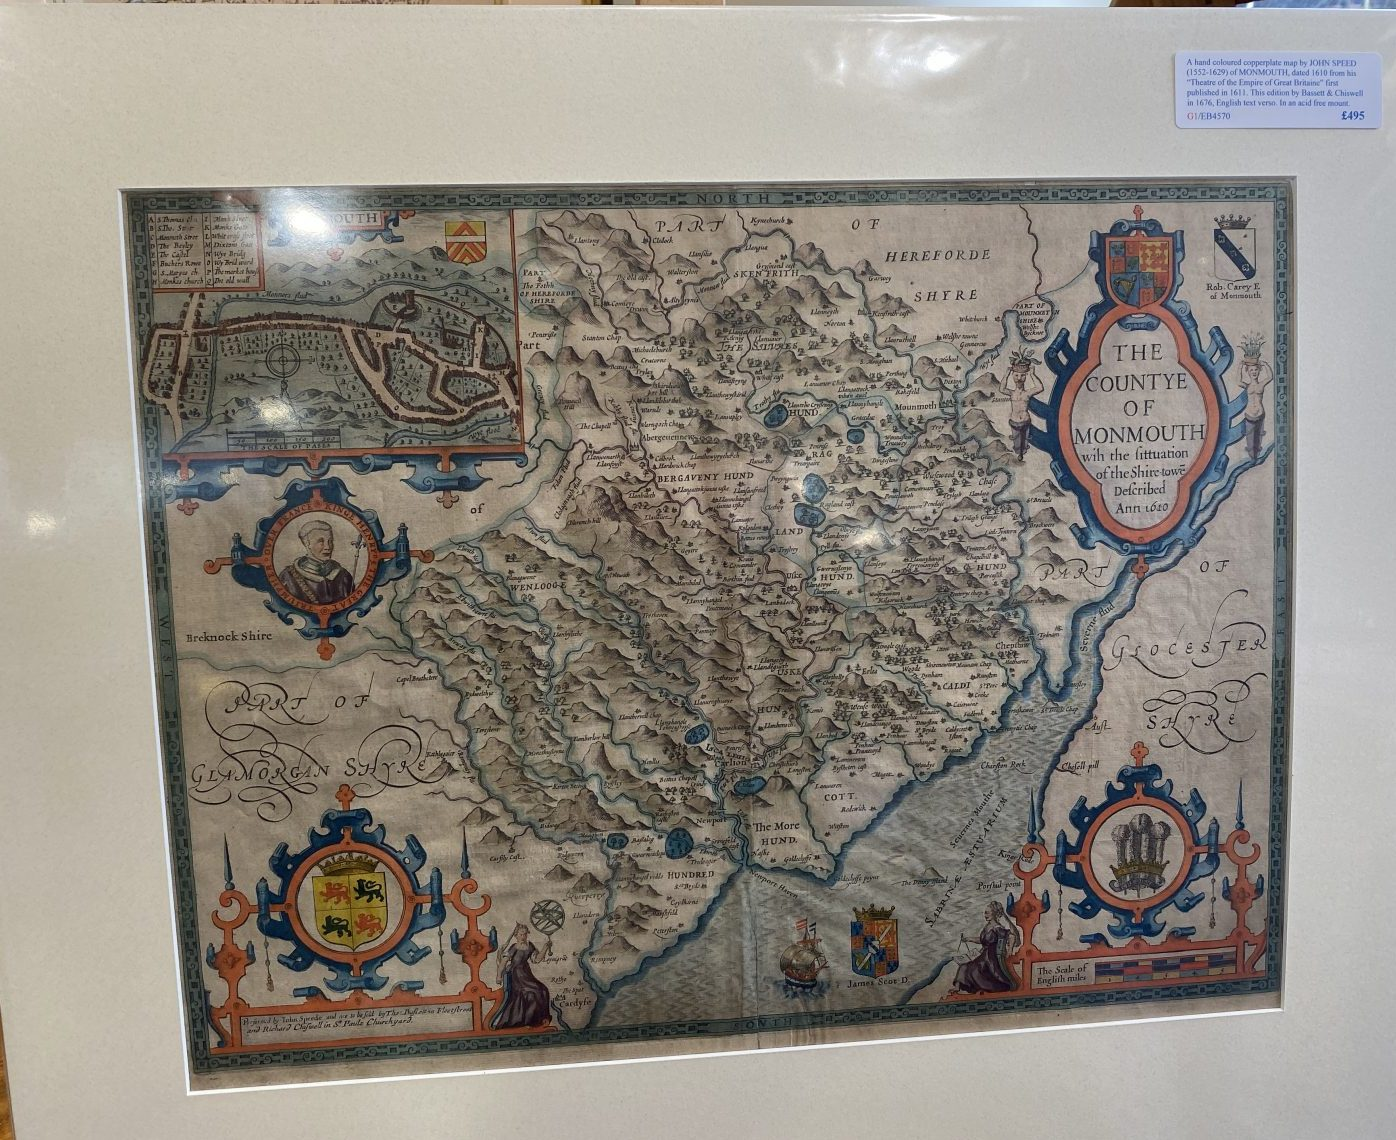 G1 - A Hand-coloured copperplate map of MONMOUTH by John Speed (1552-1629), from his Theatre of the Empire of Great Britaine. This edition published by Bassett & Chiswell in 1676, English text verso. New acid free mount ready for framing.   £495